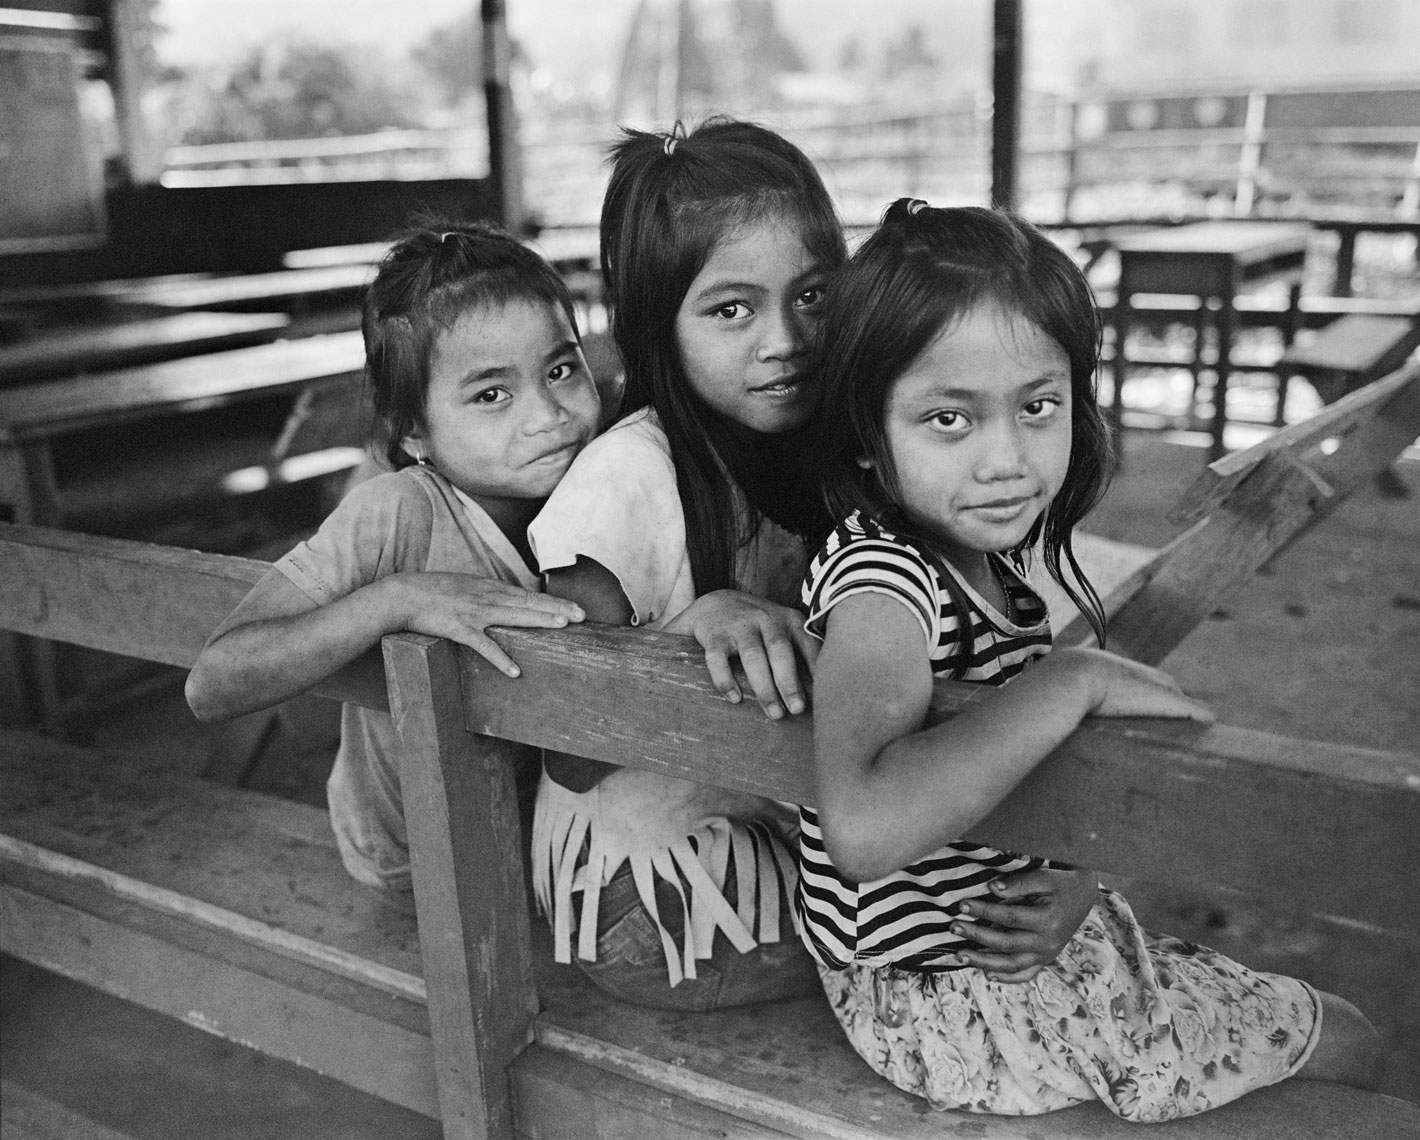 3-girls-on-school-bench